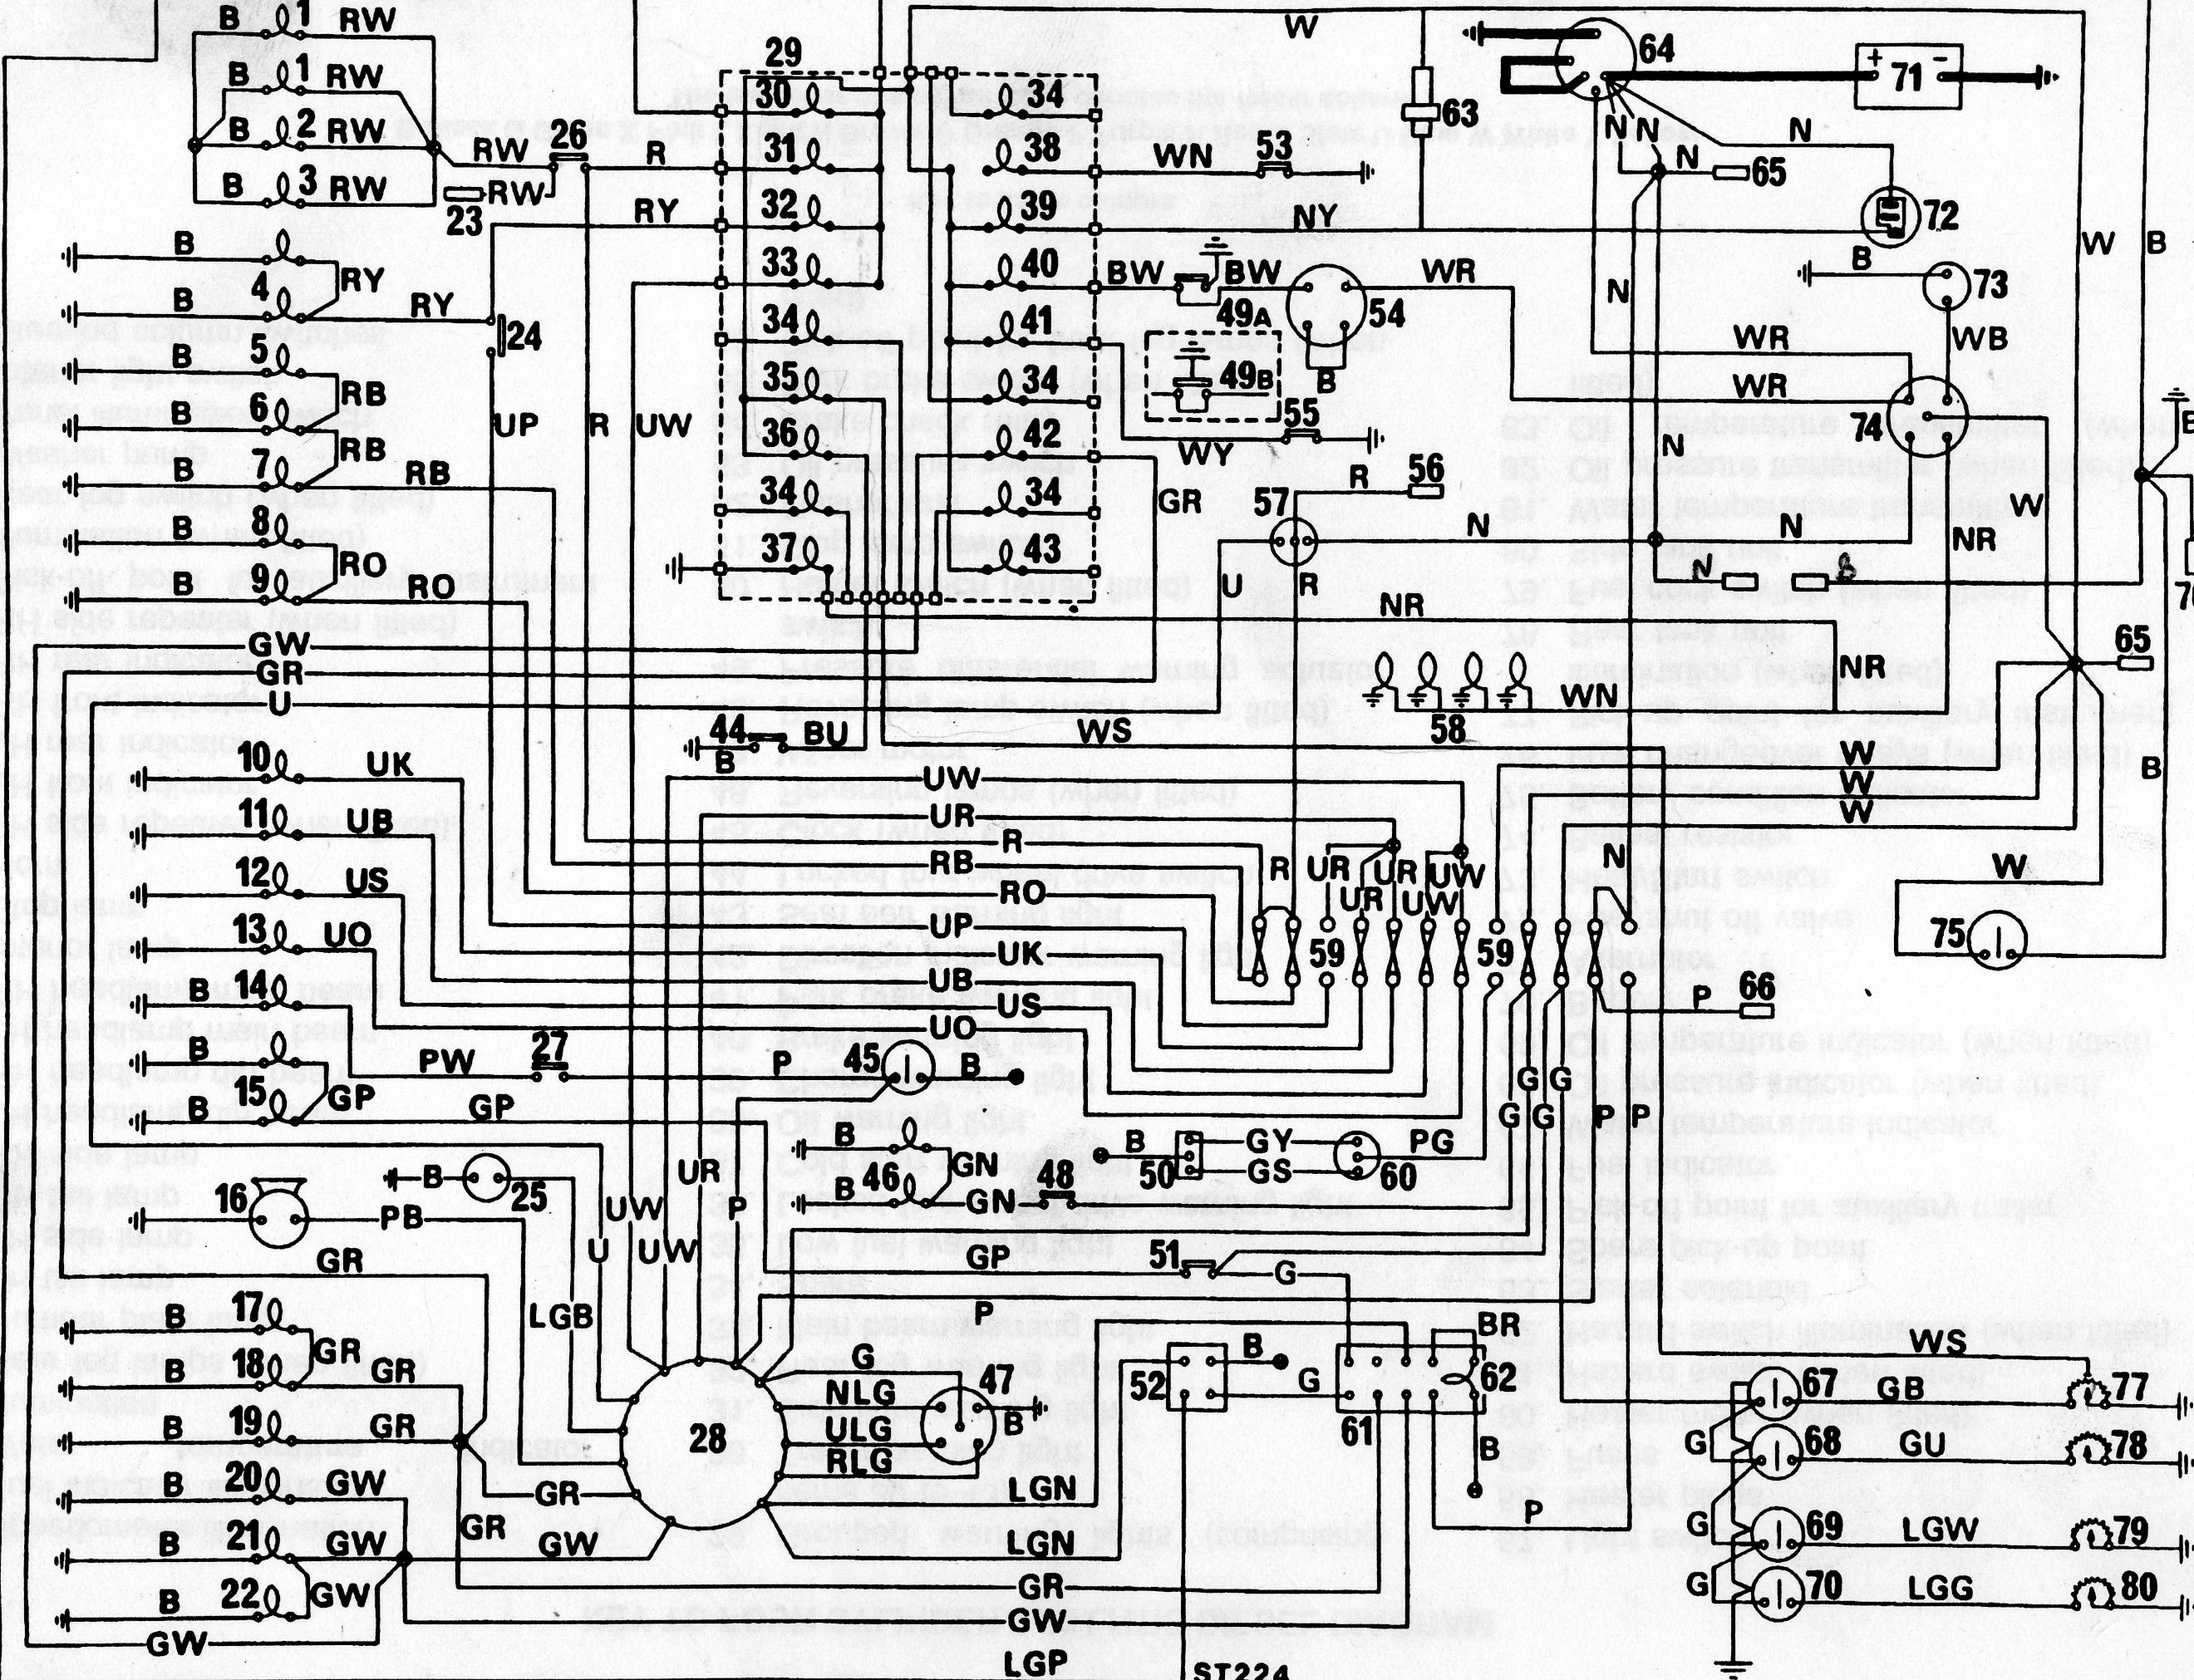 land rover 110 wiring diagram enthusiast wiring diagrams u2022 rh rasalibre co Land Rover Discovery Engine Diagram Land Rover Discovery Radiator Diagram